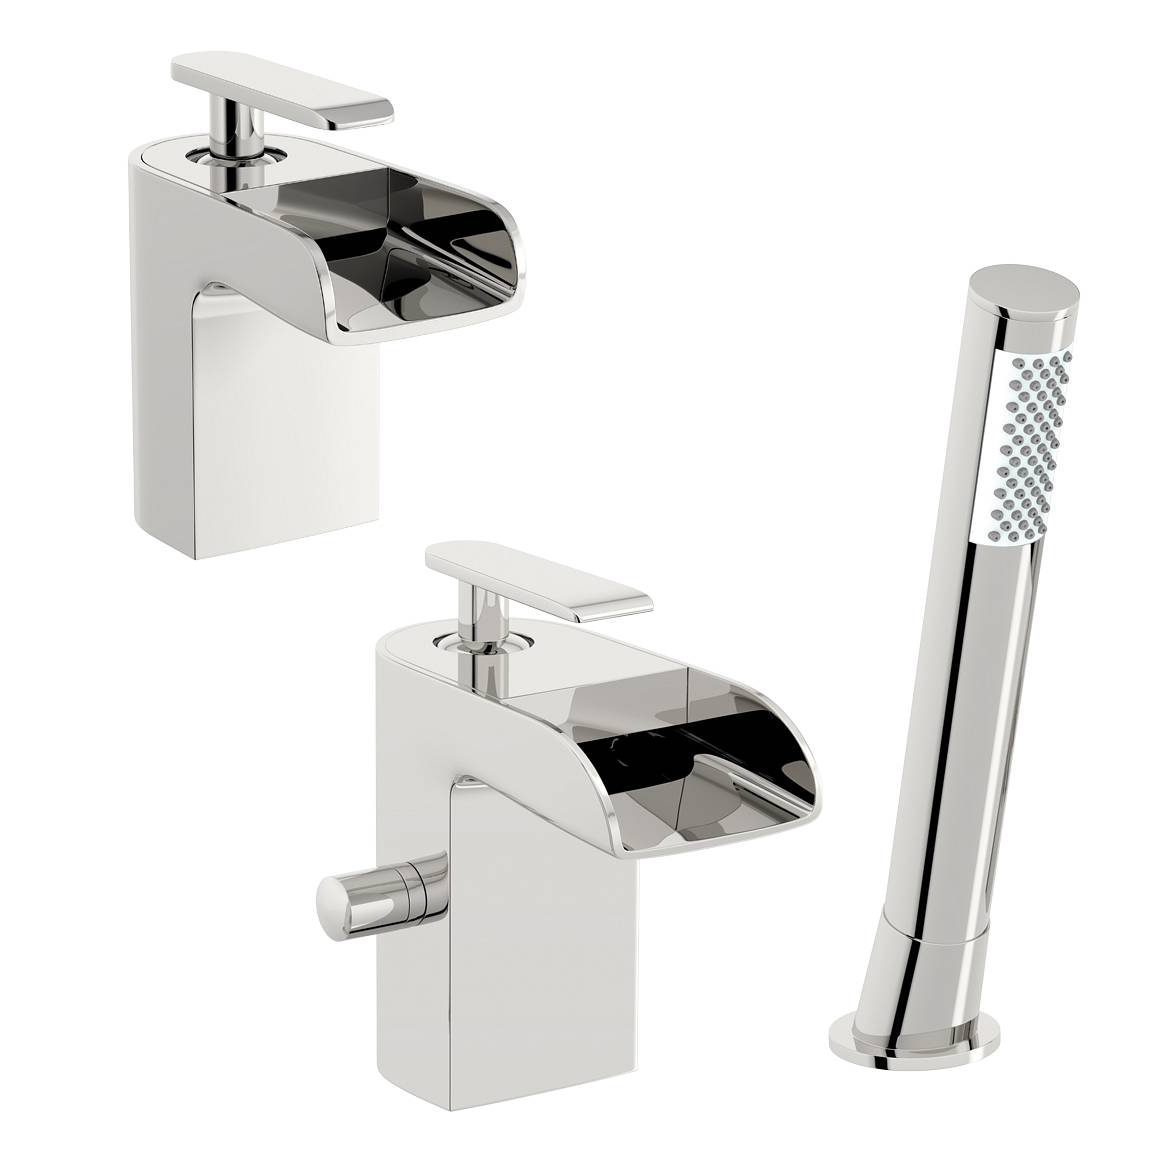 Image of Reinosa Basin and Bath Shower Mixer Pack